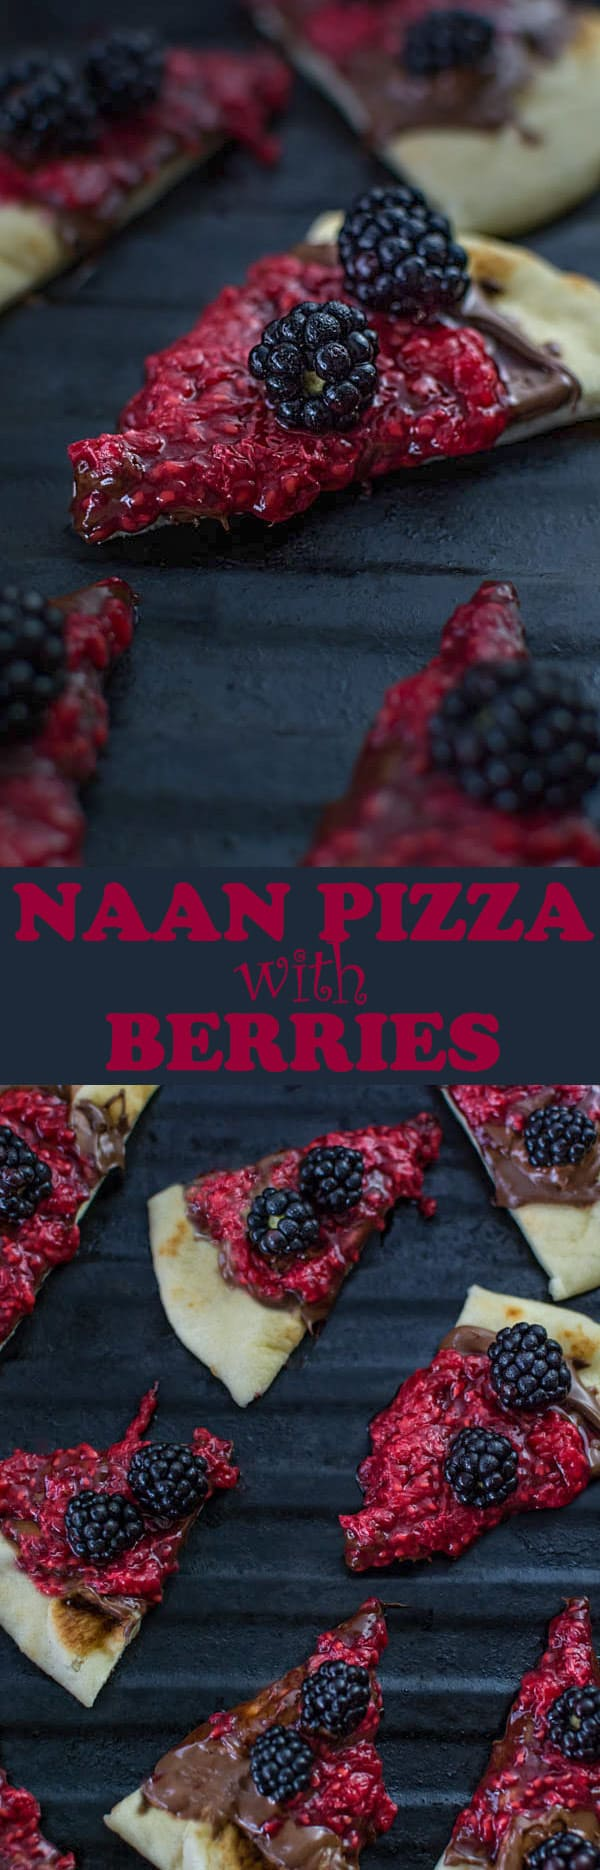 Enjoy this simple dessert in just 10 minutes! All you need is naan bread, Nutella and some berries! ❤ COOKTORIA.COM